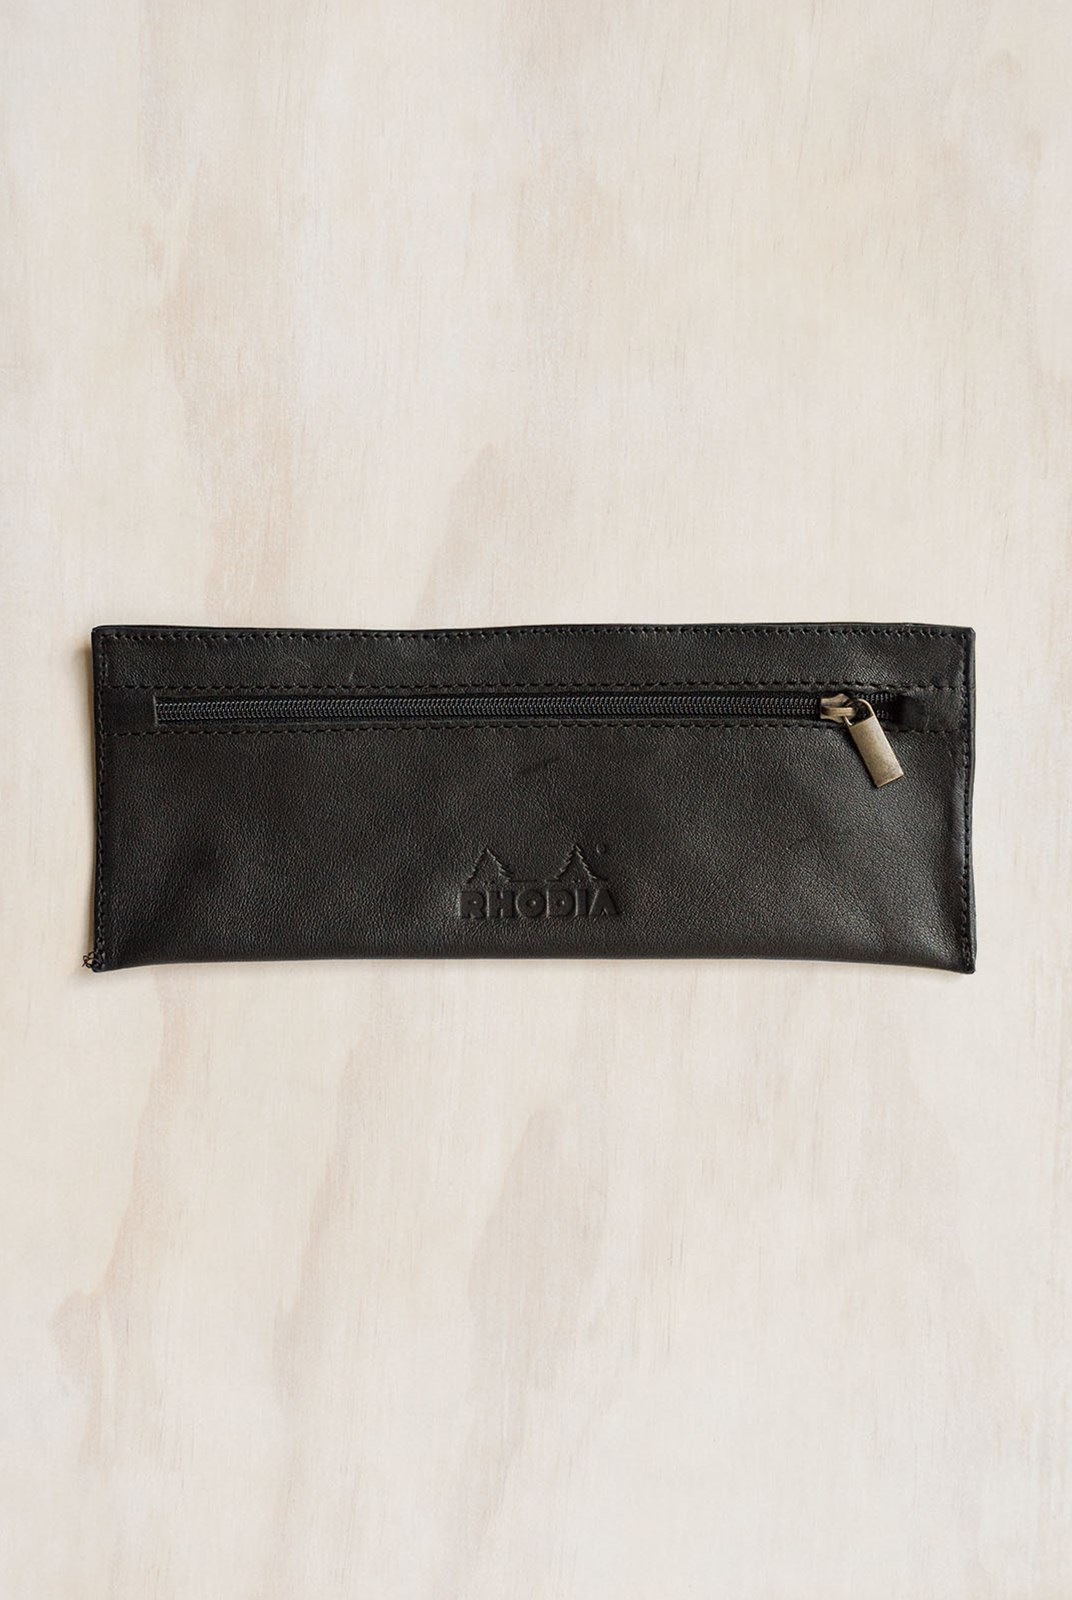 Rhodia - Leather Pencil Case Black